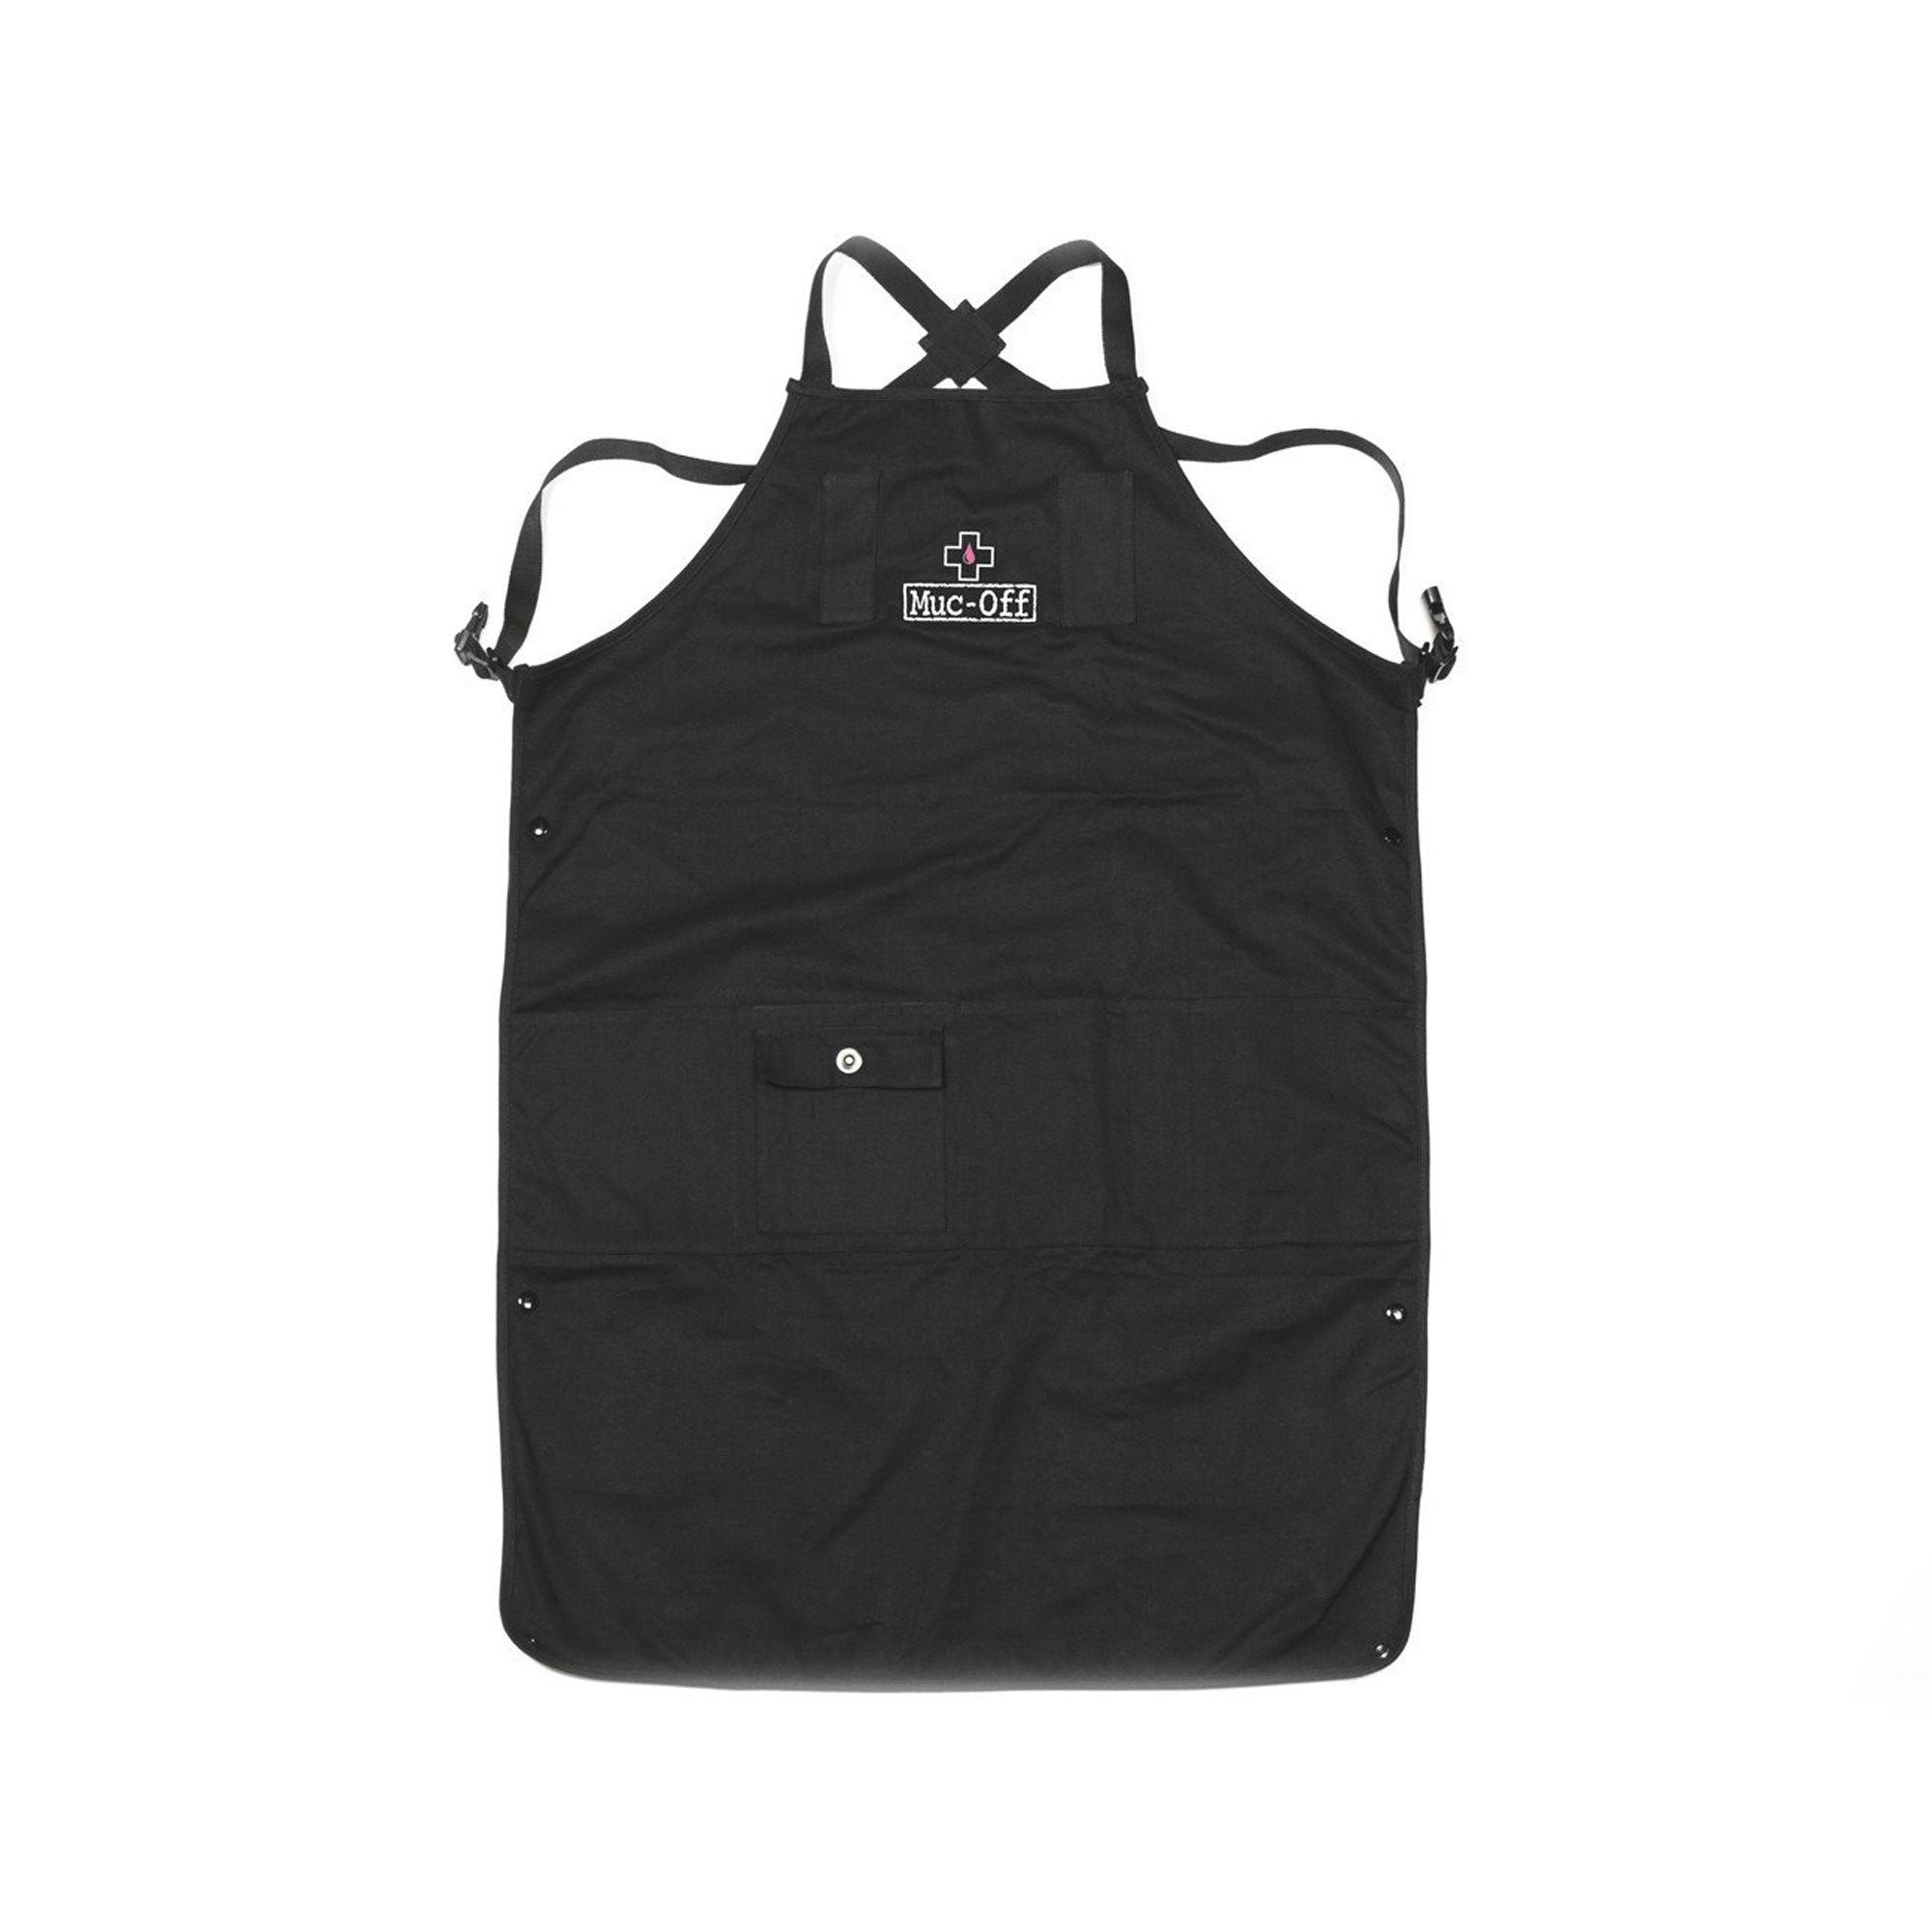 Muc-Off Accessories > Locks & Tools Muc-Off WORKSHOP APRON